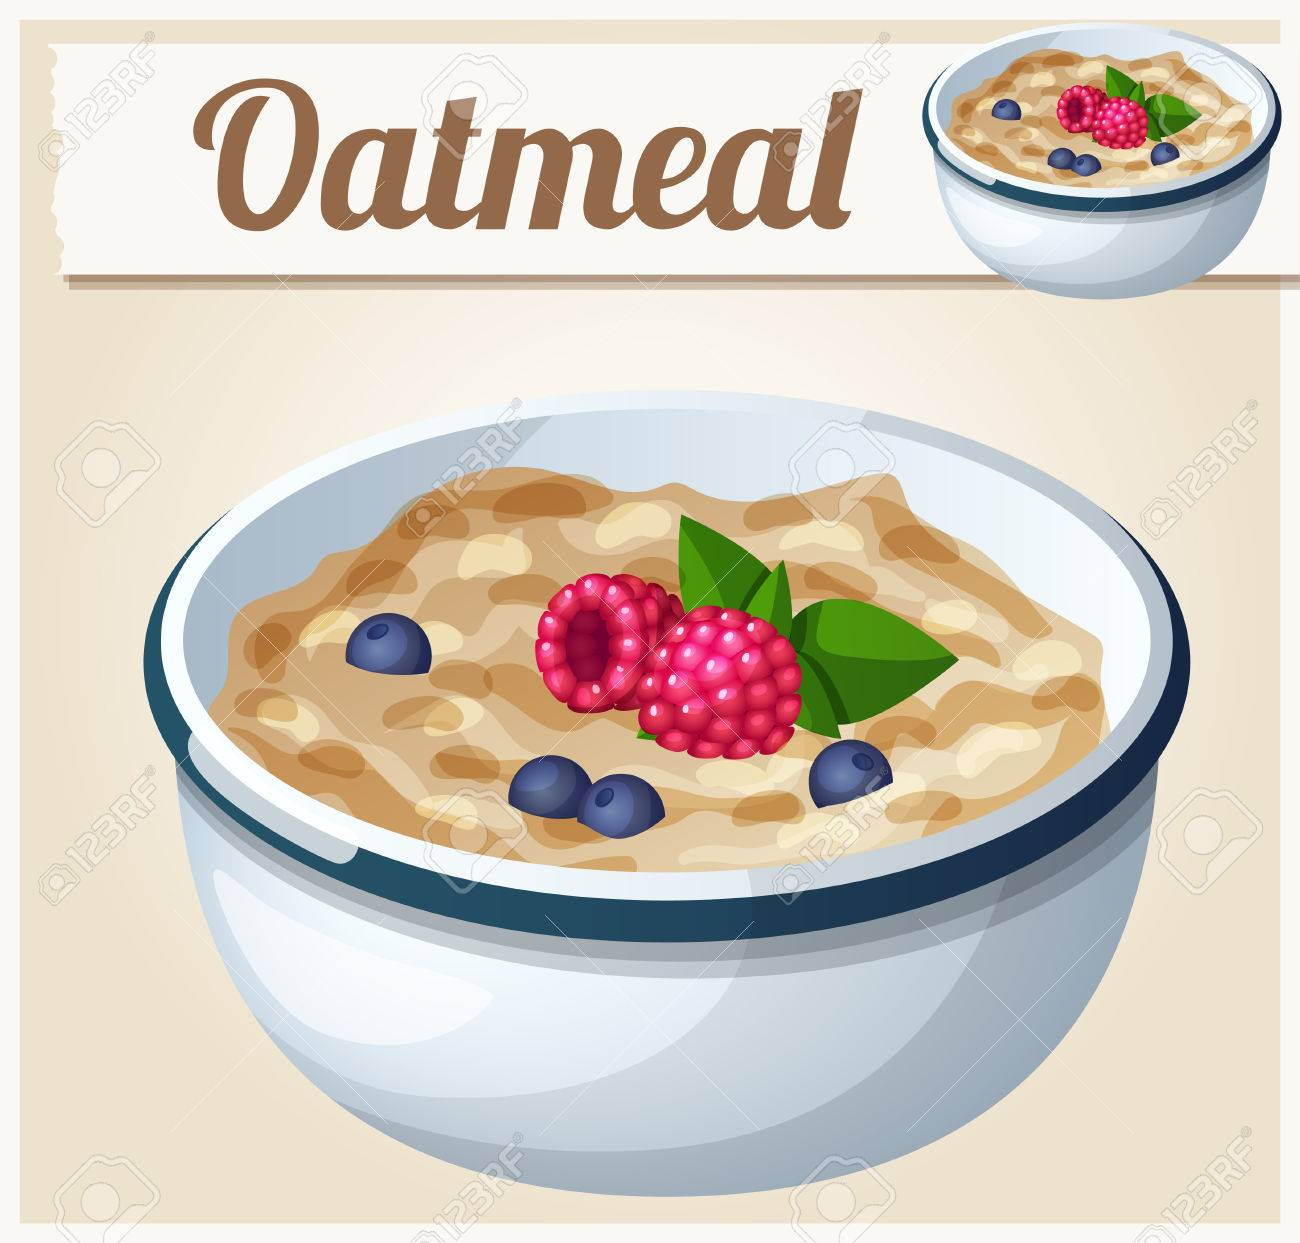 Oatmeal. Cartoon Vector Icon. Series of food and drink and ingredients for cooking. - 47336708